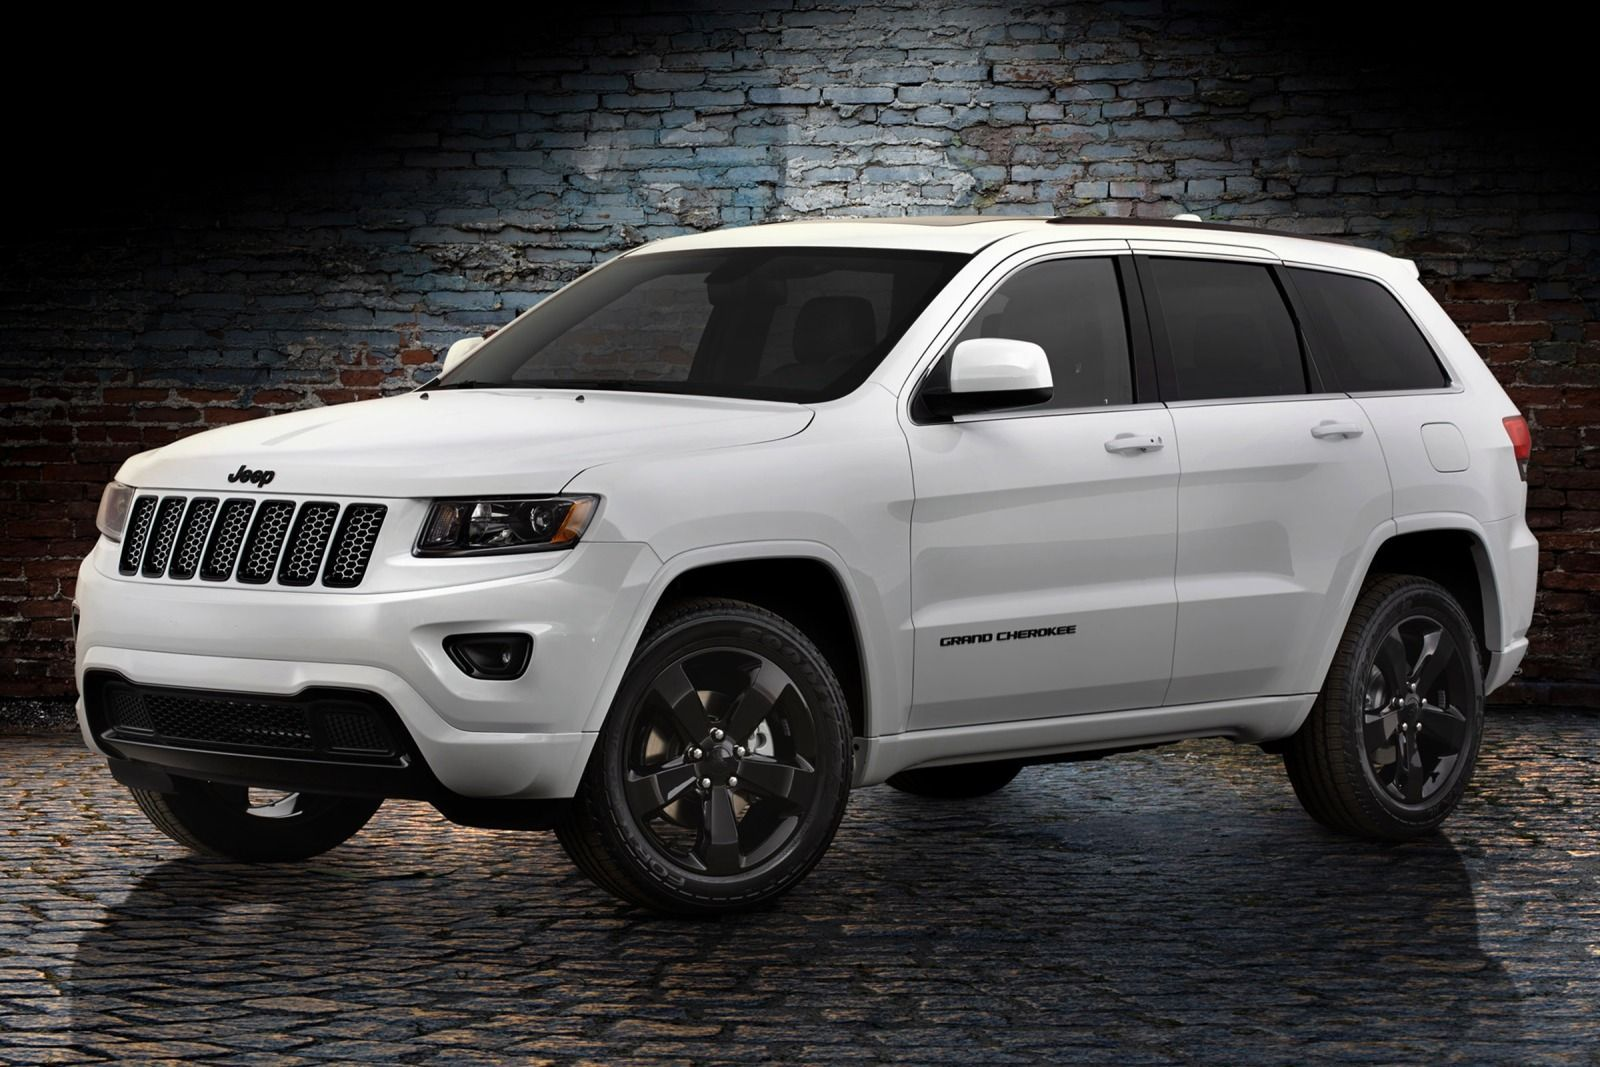 2015 Jeep Grand Cherokee High Quality Photo Http Wallucky Com 2015 Jeep Grand Cherokee High Quality Jeep Grand Cherokee 2014 Jeep Grand Cherokee 2015 Jeep